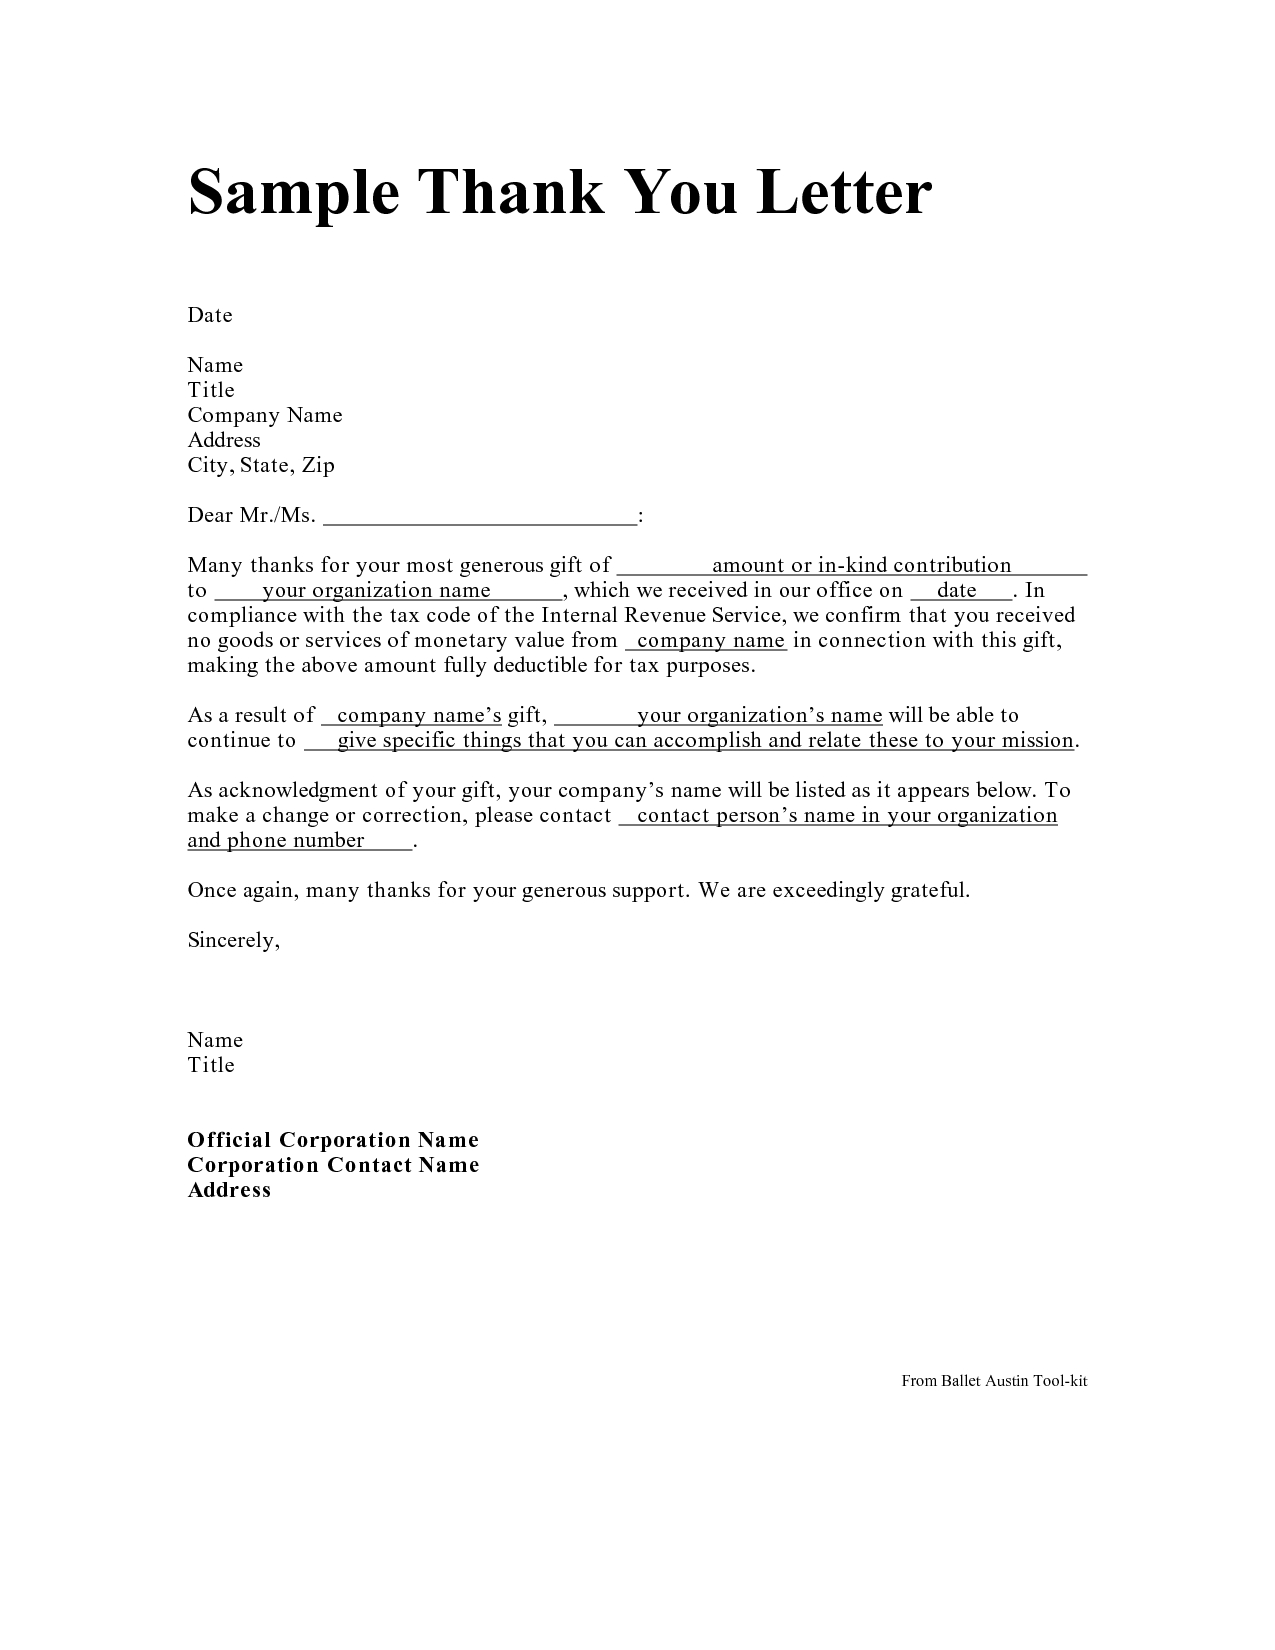 Business Thank You Letter Template - Personal Thank You Letter Personal Thank You Letter Samples